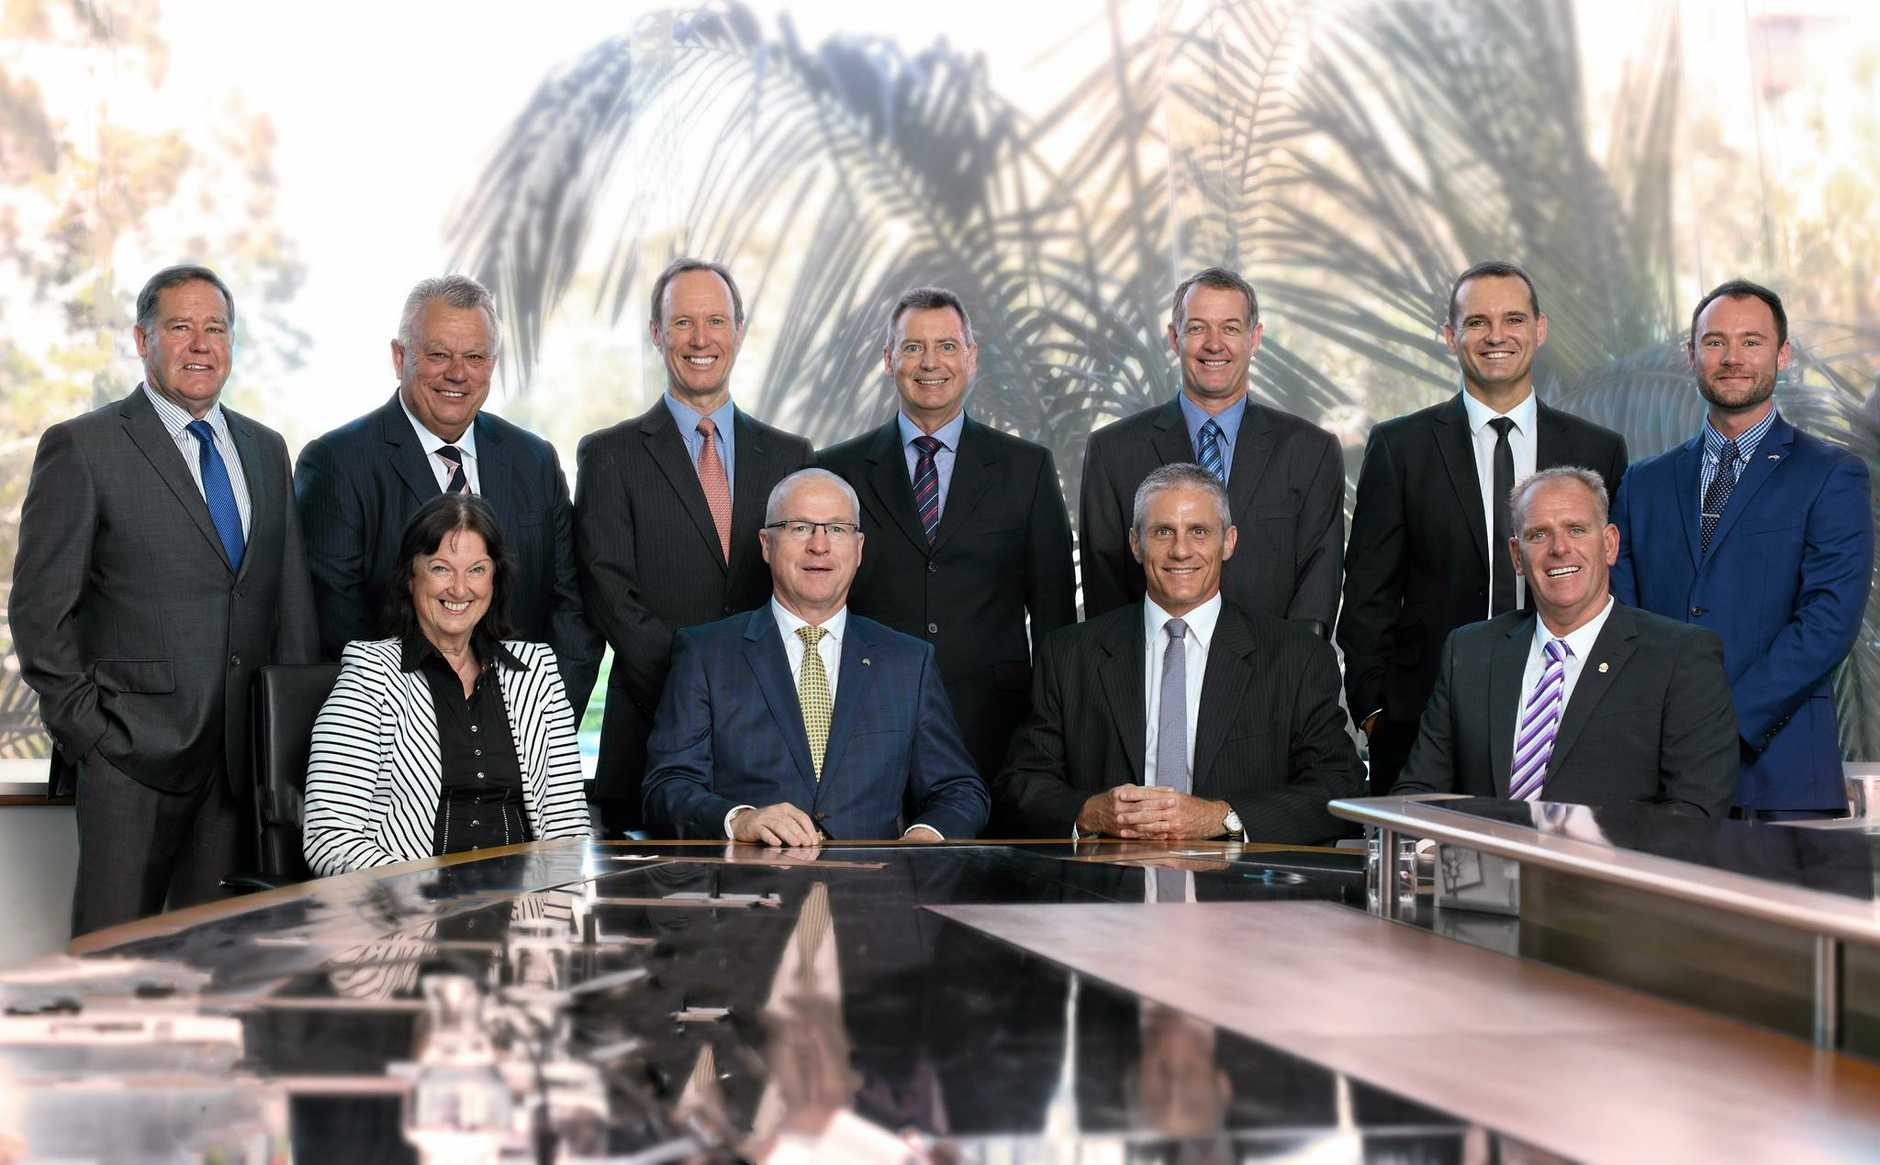 Sunshine Coast Council elected on March 19, 2016.